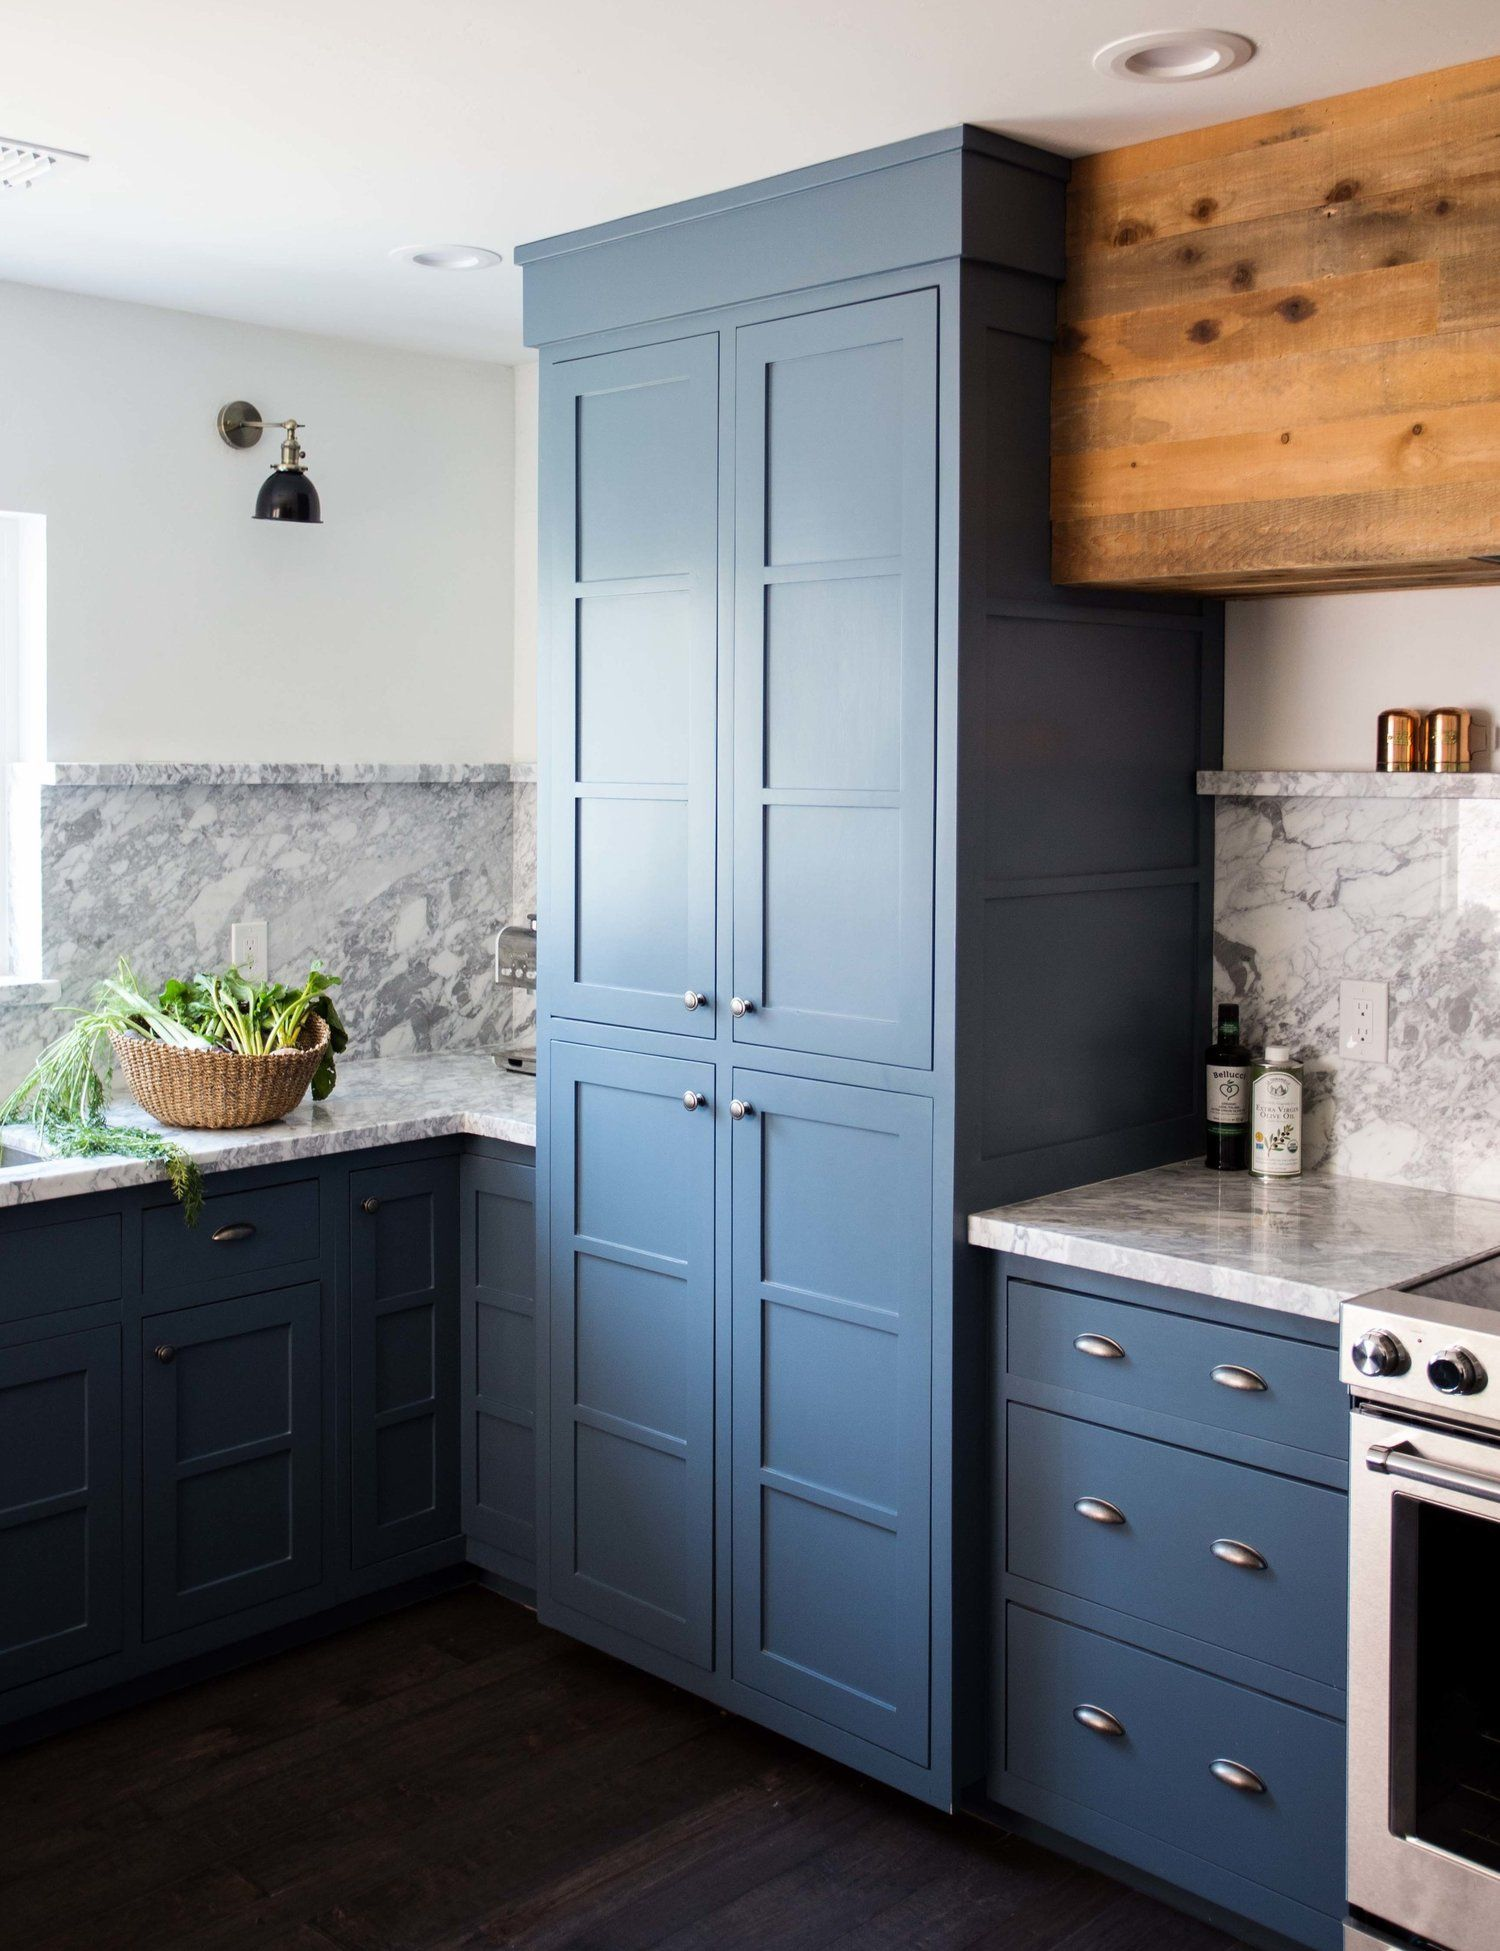 Clarendon Kitchen Pantry shaker style cabinet blue marble curb ...